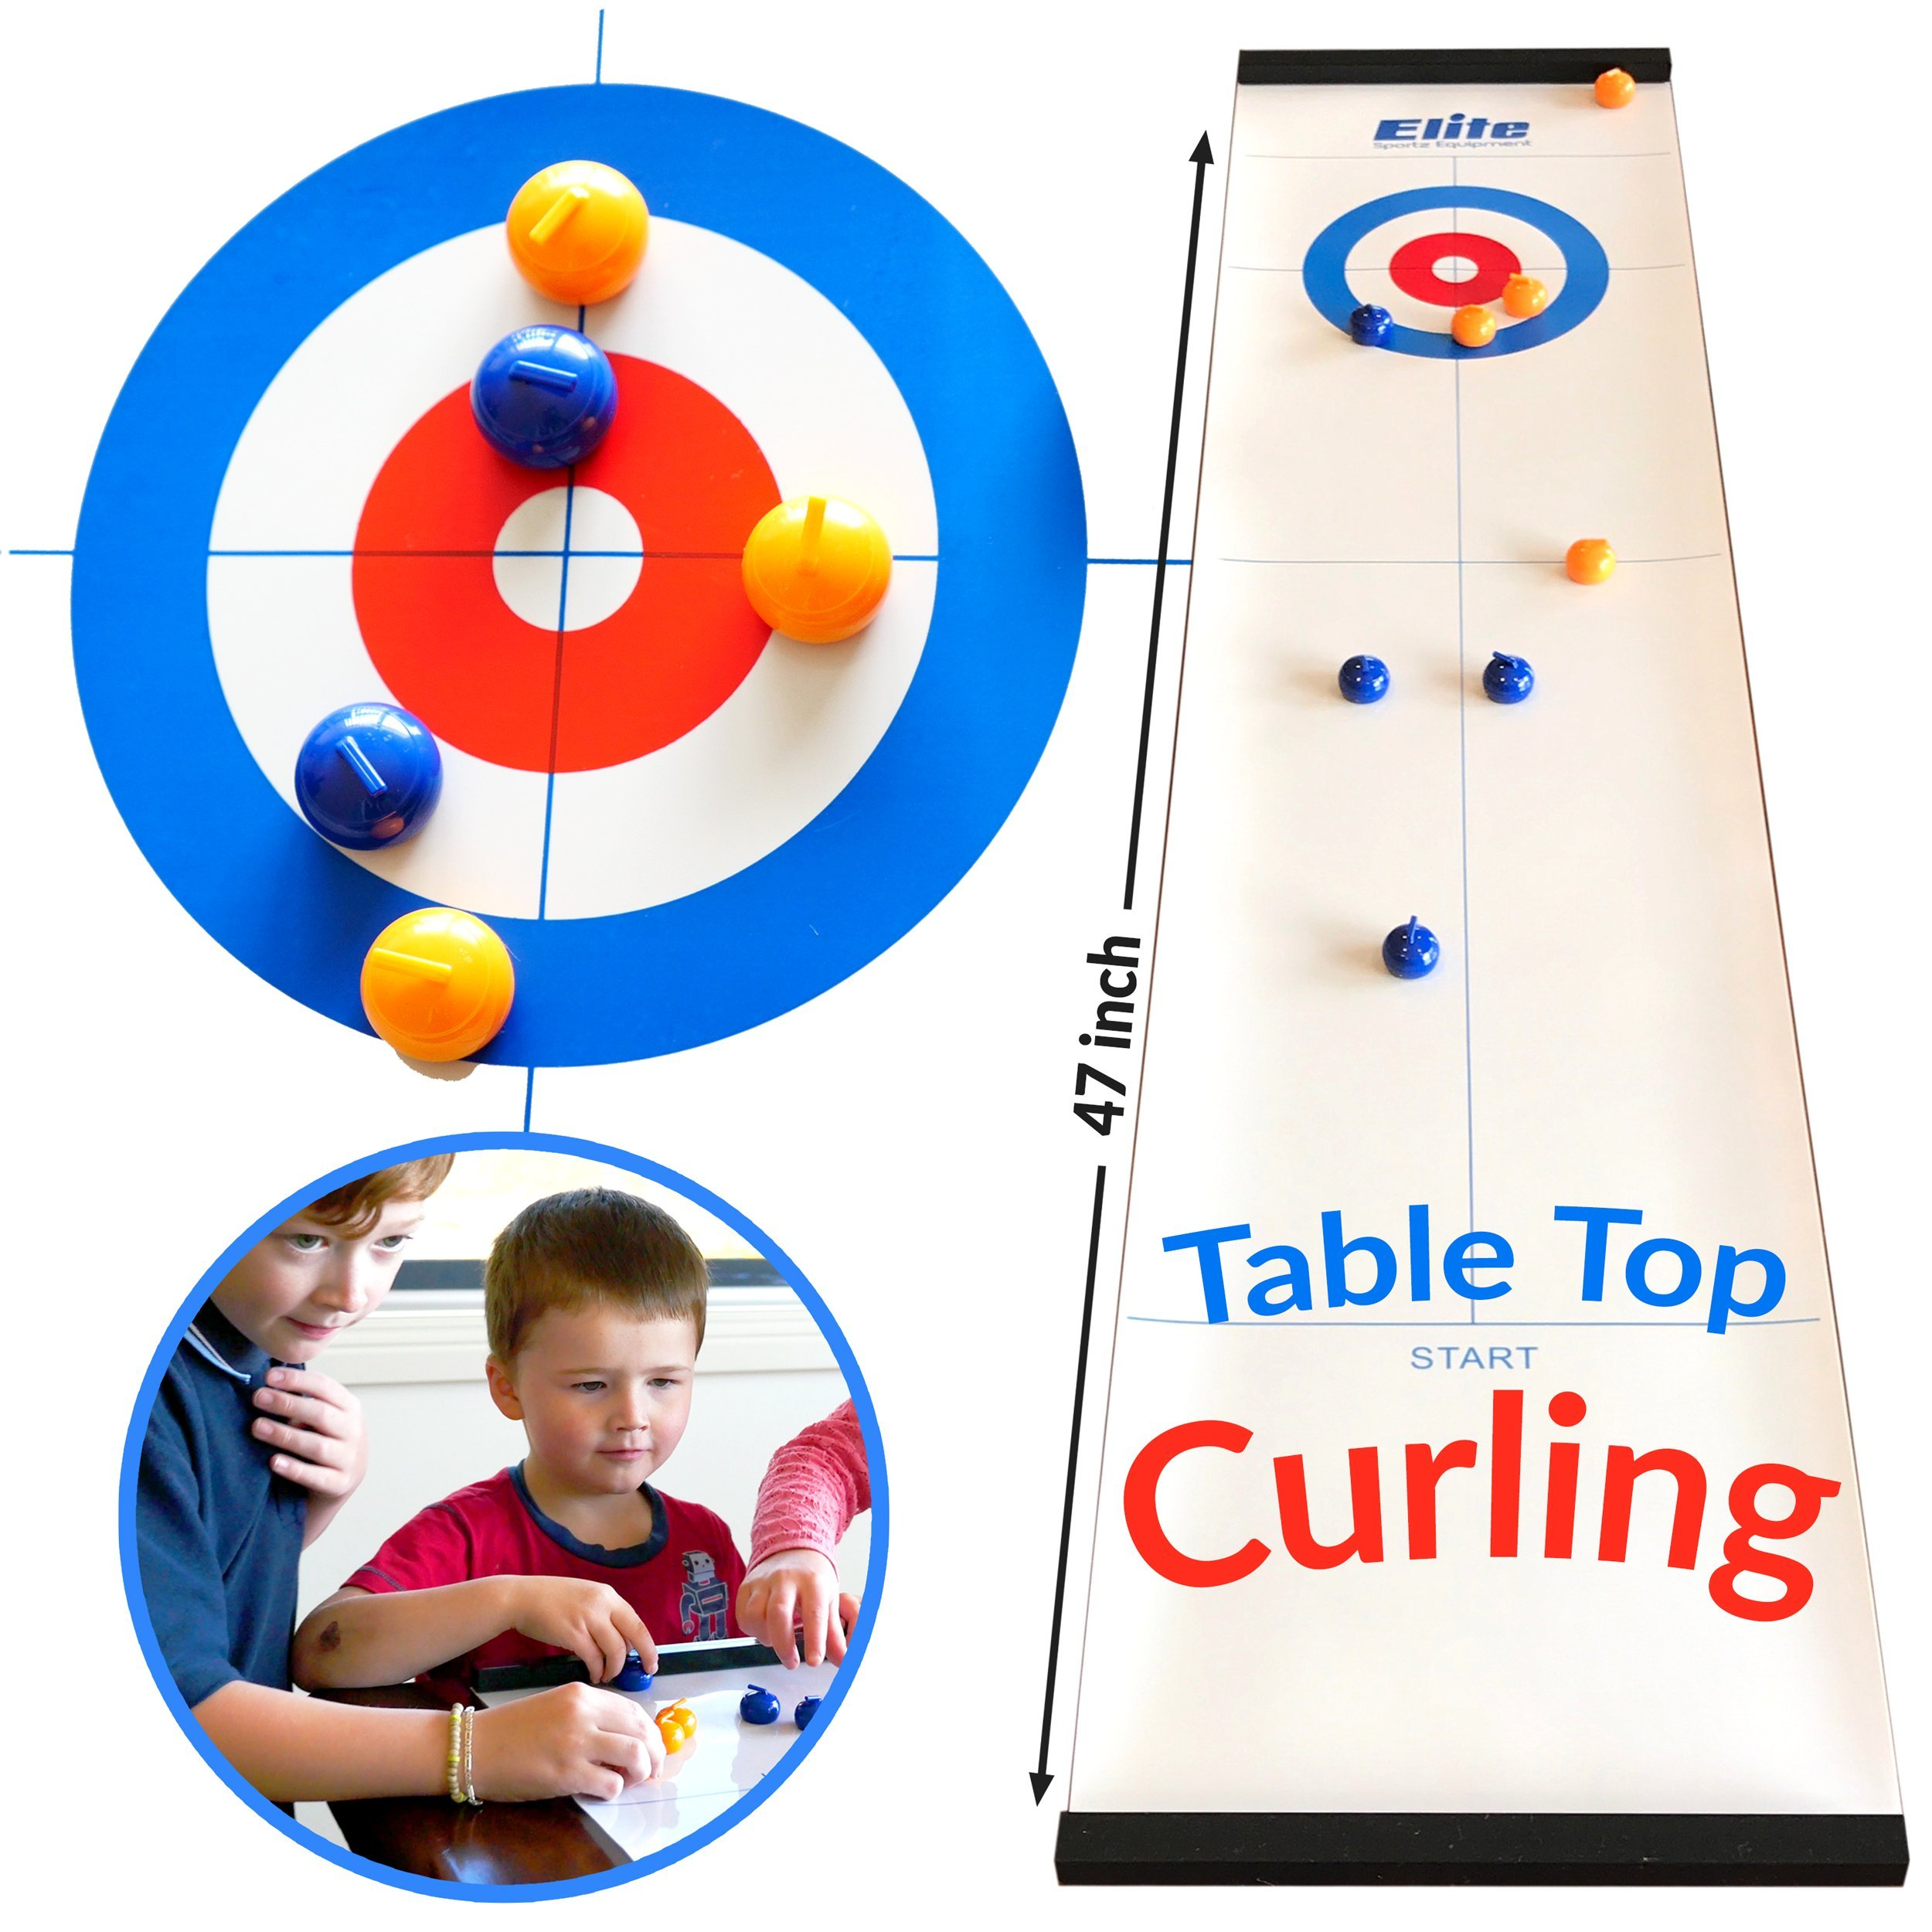 Elite Sportz Equipment Family Games for Kids and Adults - Fun Kids Games Ages 4 and Up - Way More Fun Than it Looks, is Quick and Easy to Set-Up and So Compact for Storage (A Curling Game) by Elite Sportz Equipment